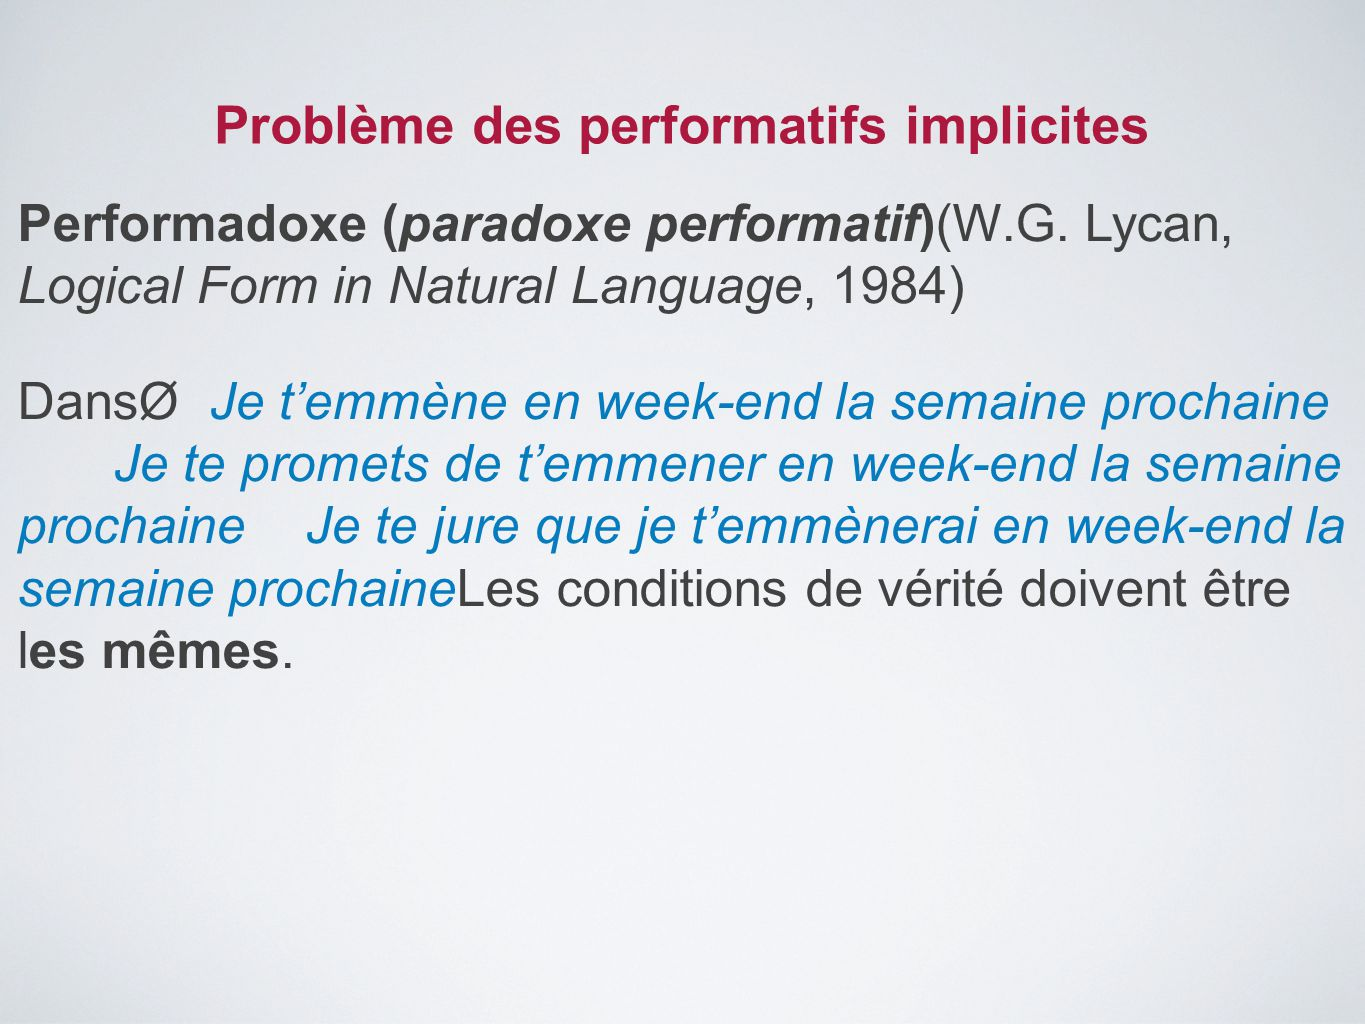 Problème des performatifs implicites Performadoxe (paradoxe performatif)(W.G. Lycan, Logical Form in Natural Language, 1984) DansØJe t'emmène en week-